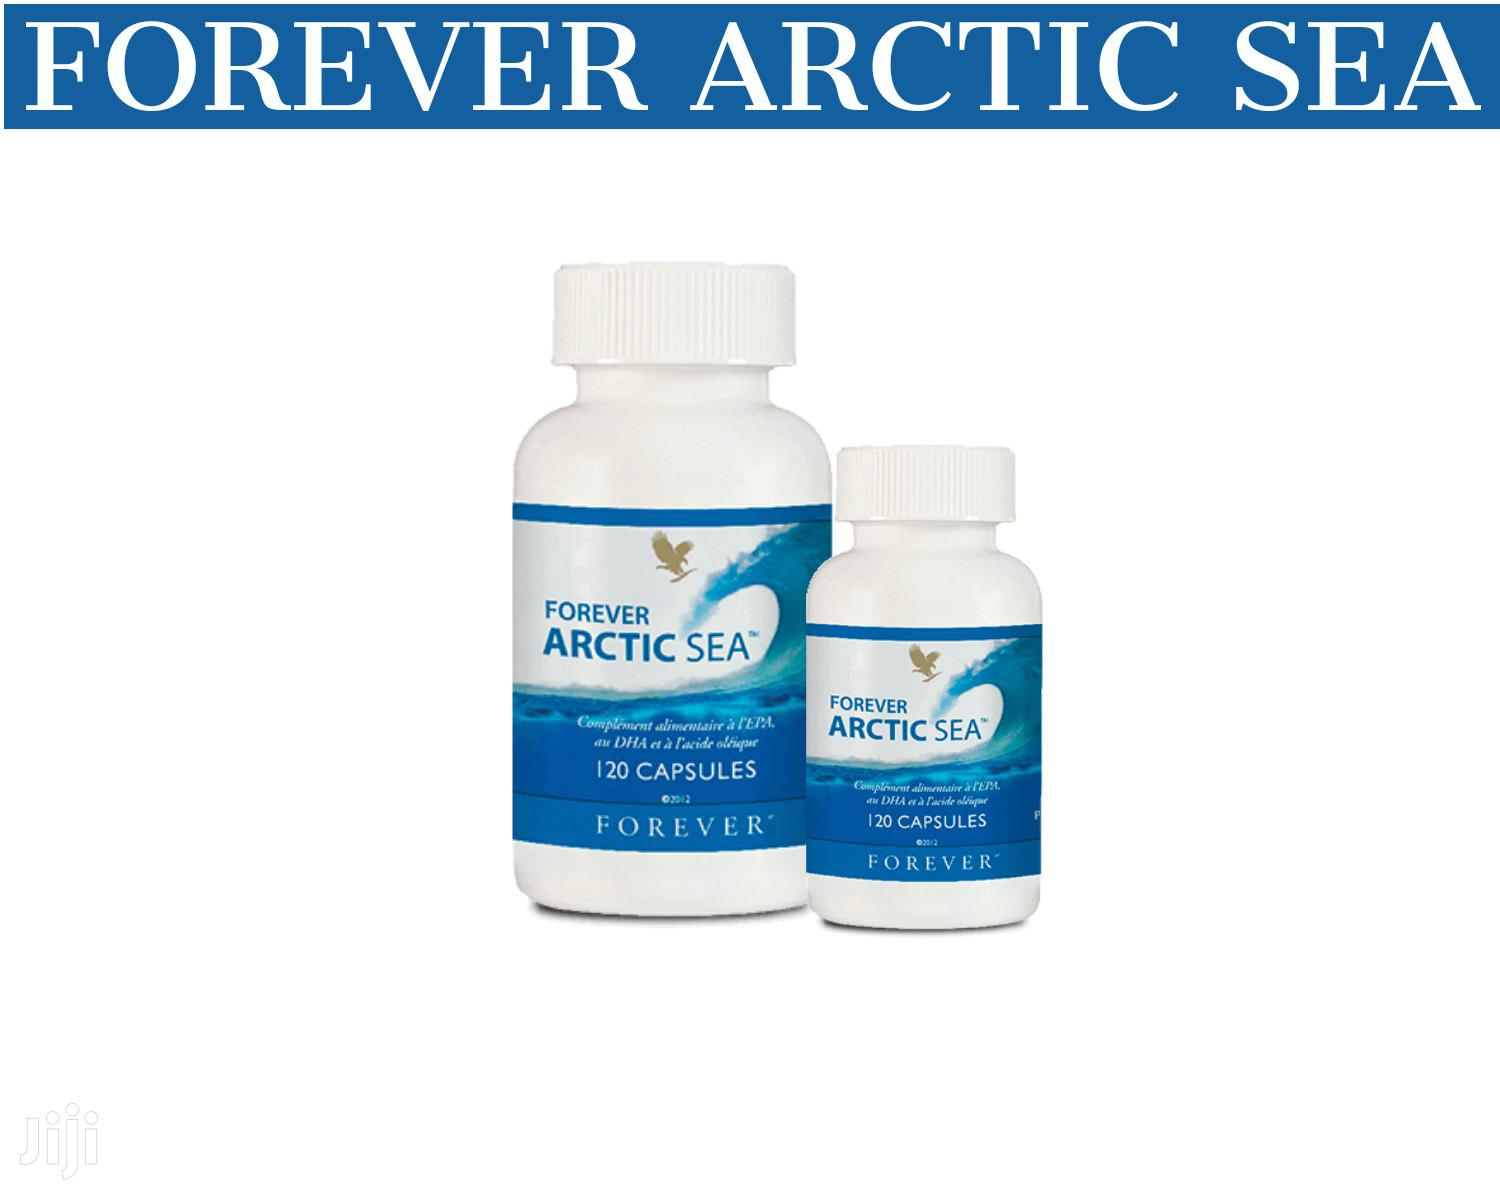 Natural Source Of Omega 3 - Forever Artic Sea